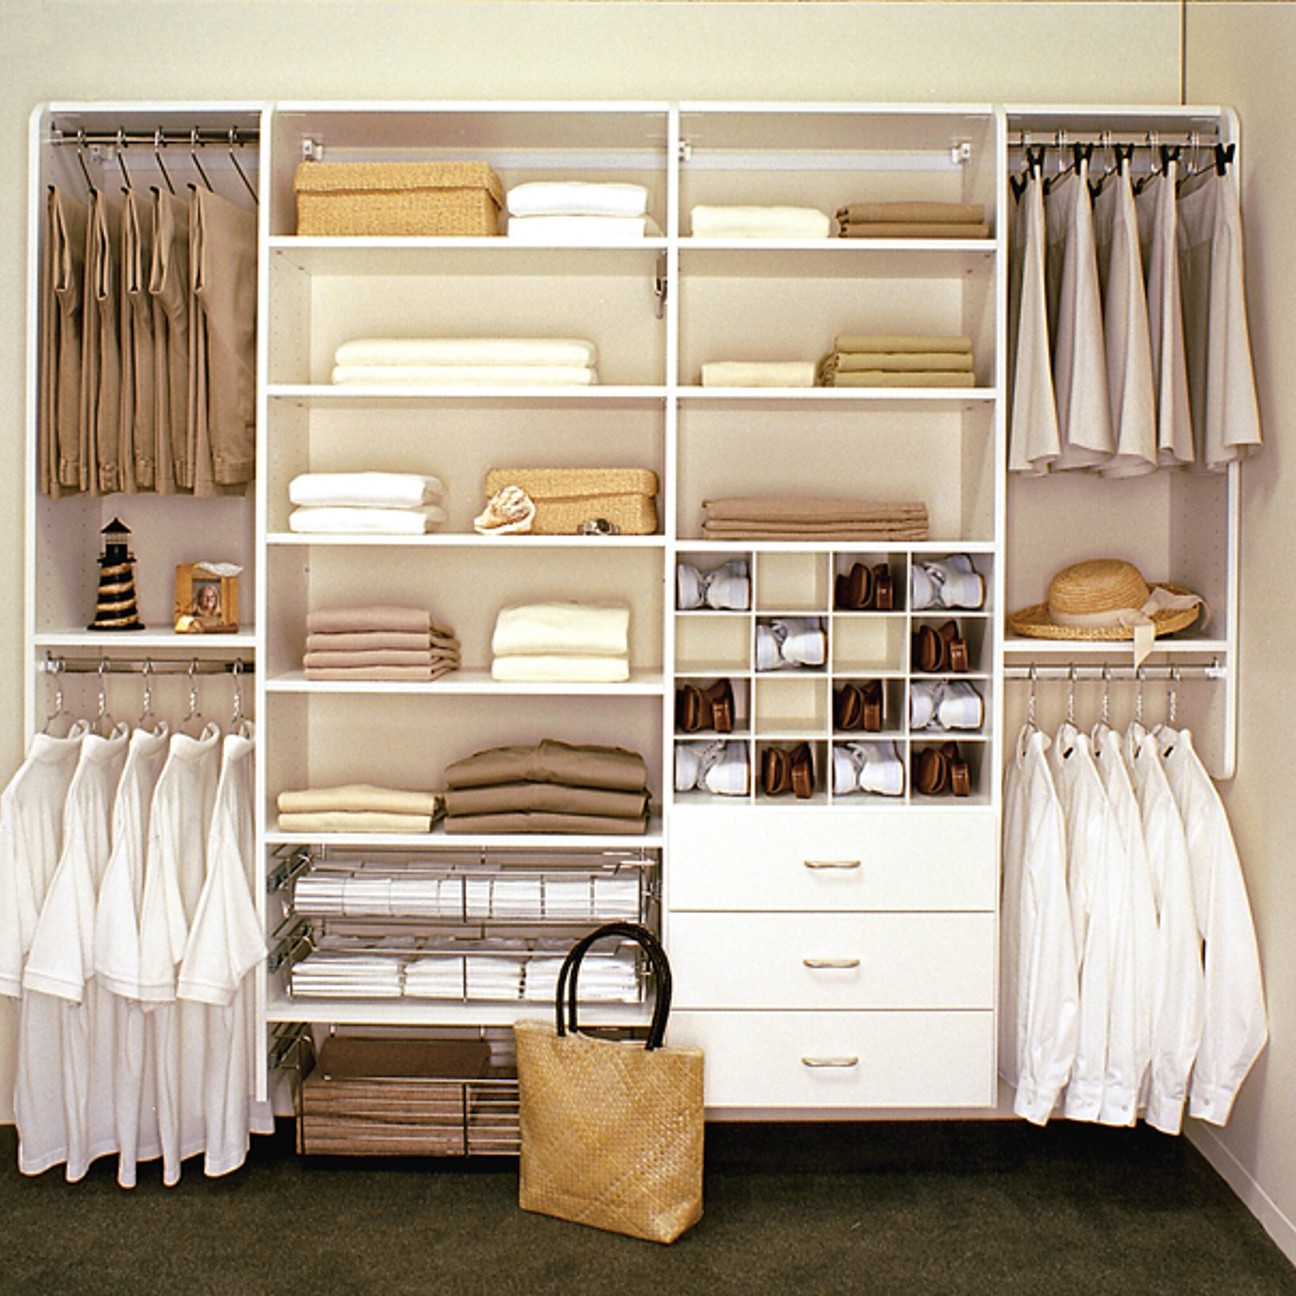 Walk in linen closet design – 16 varieties to organize the space